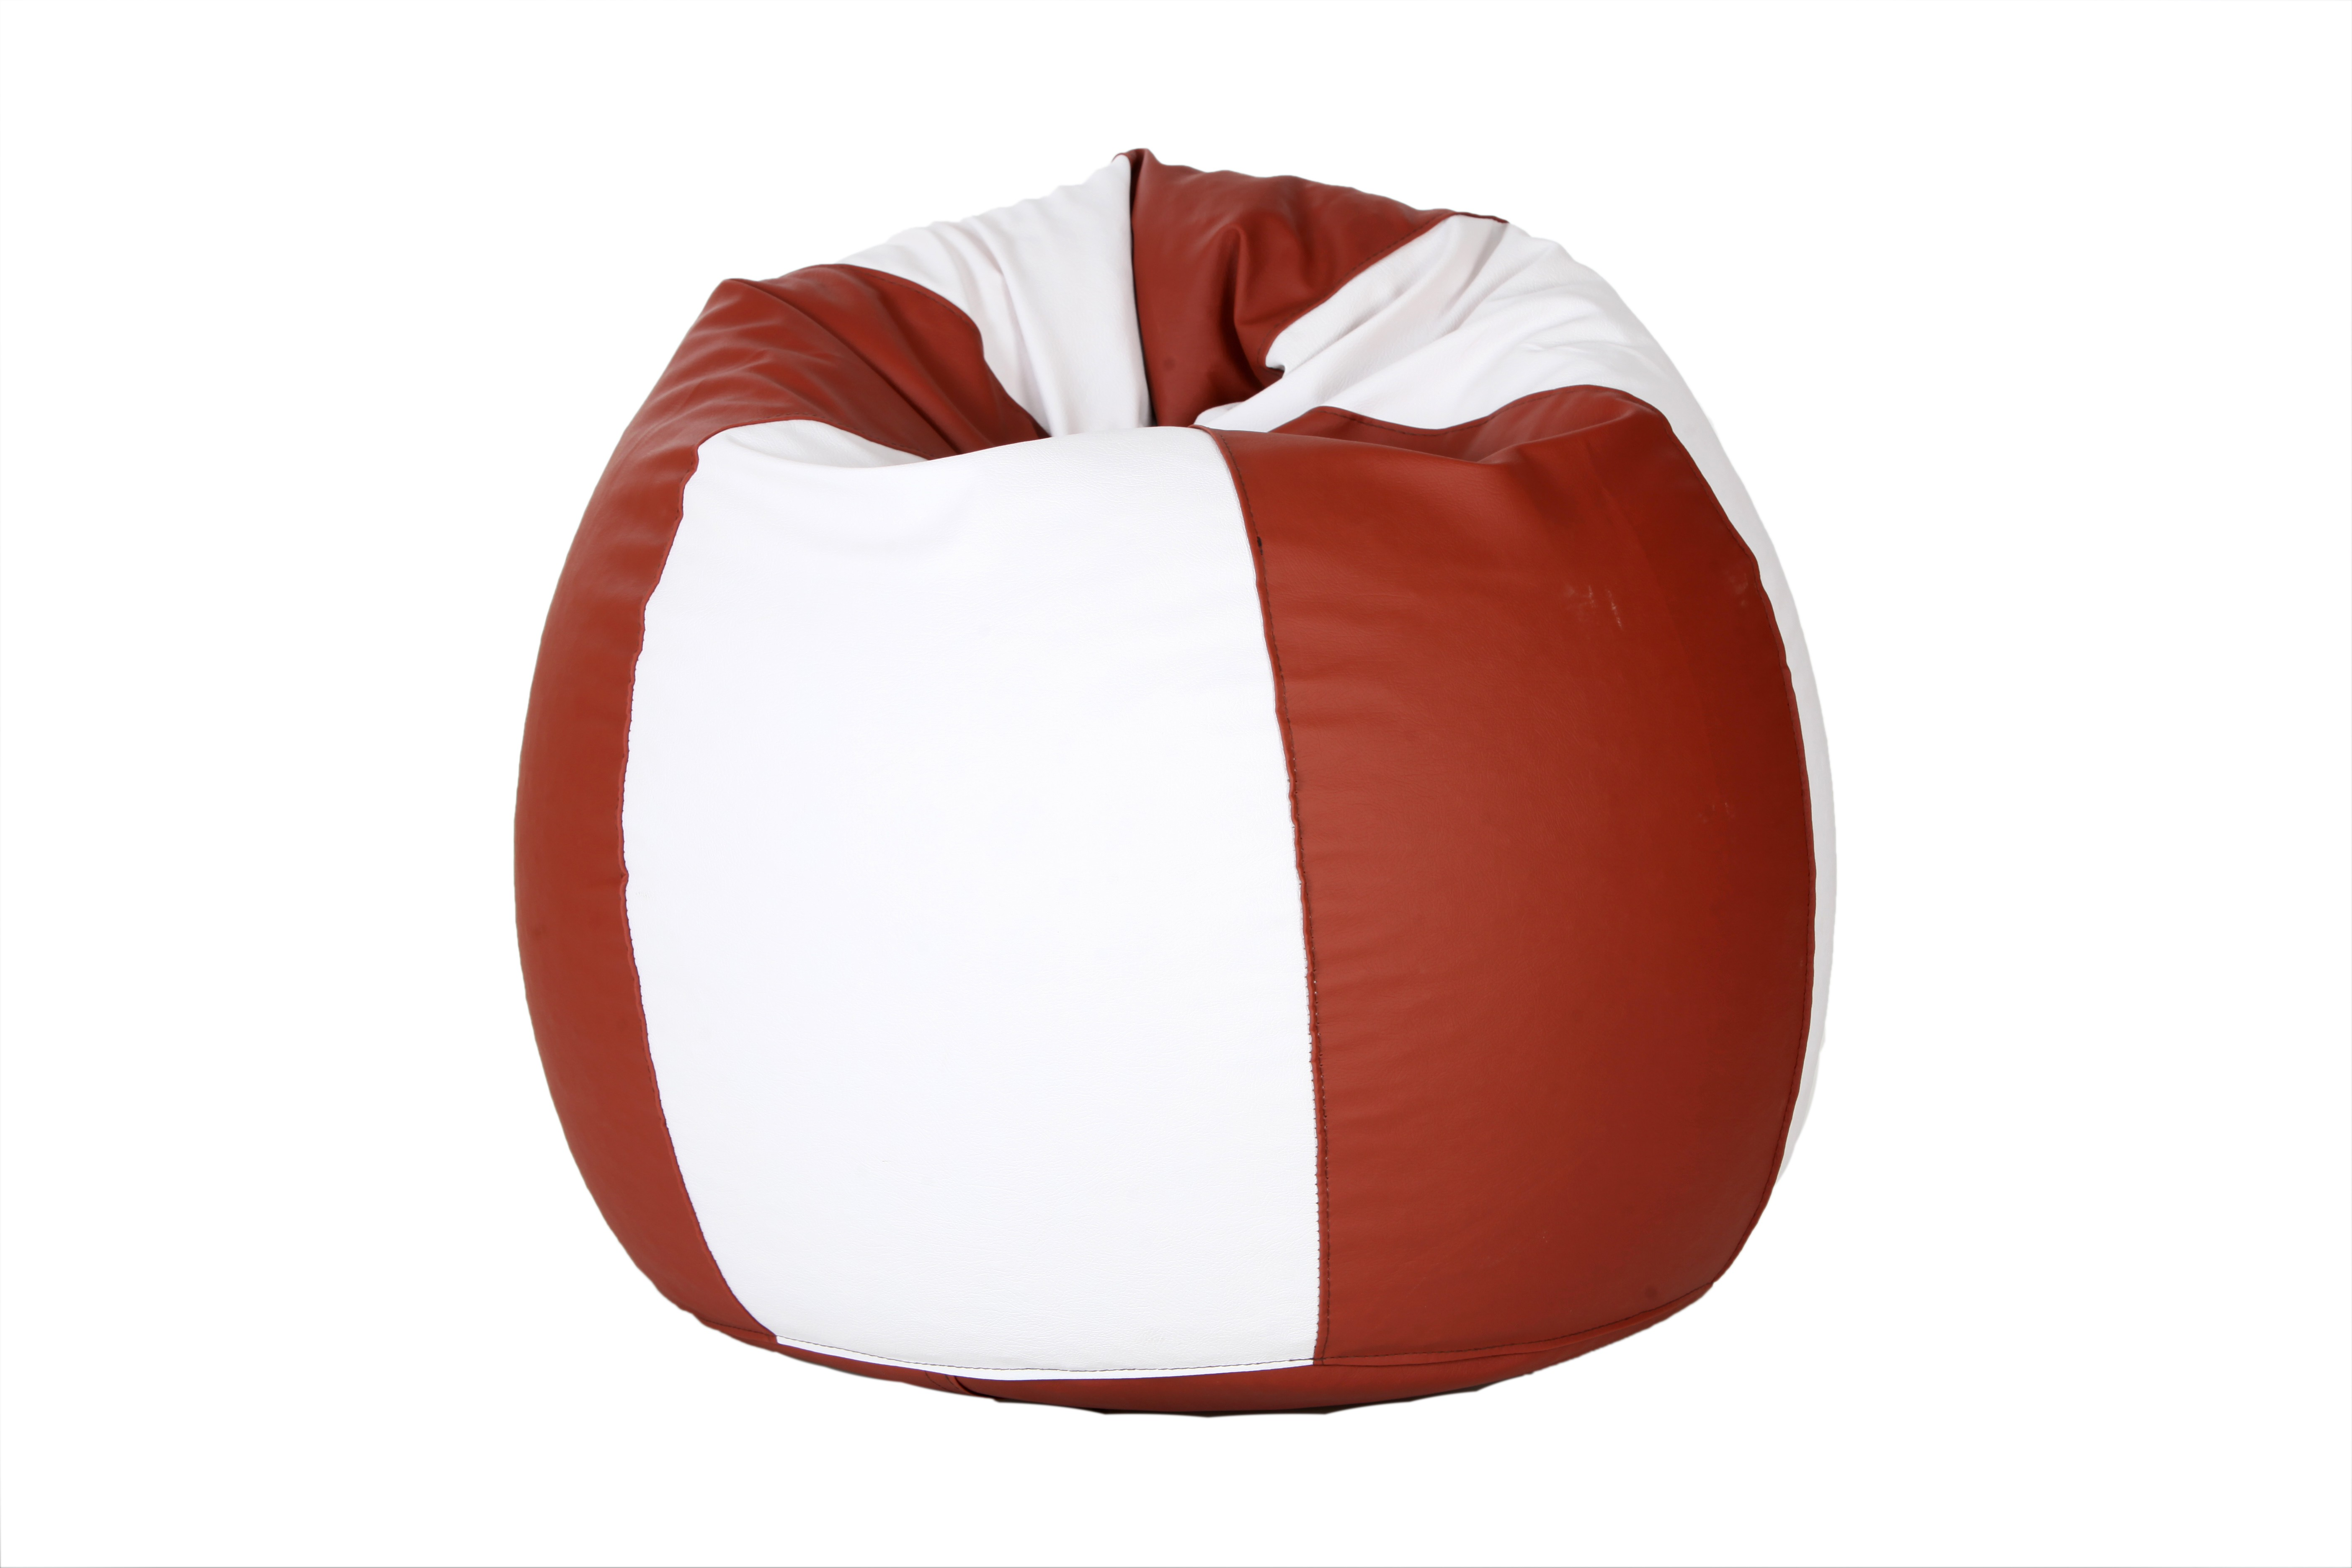 View Comfy Bean Bags XXXL Bean Bag Cover(White, Brown) Furniture (Comfy Bean Bags)